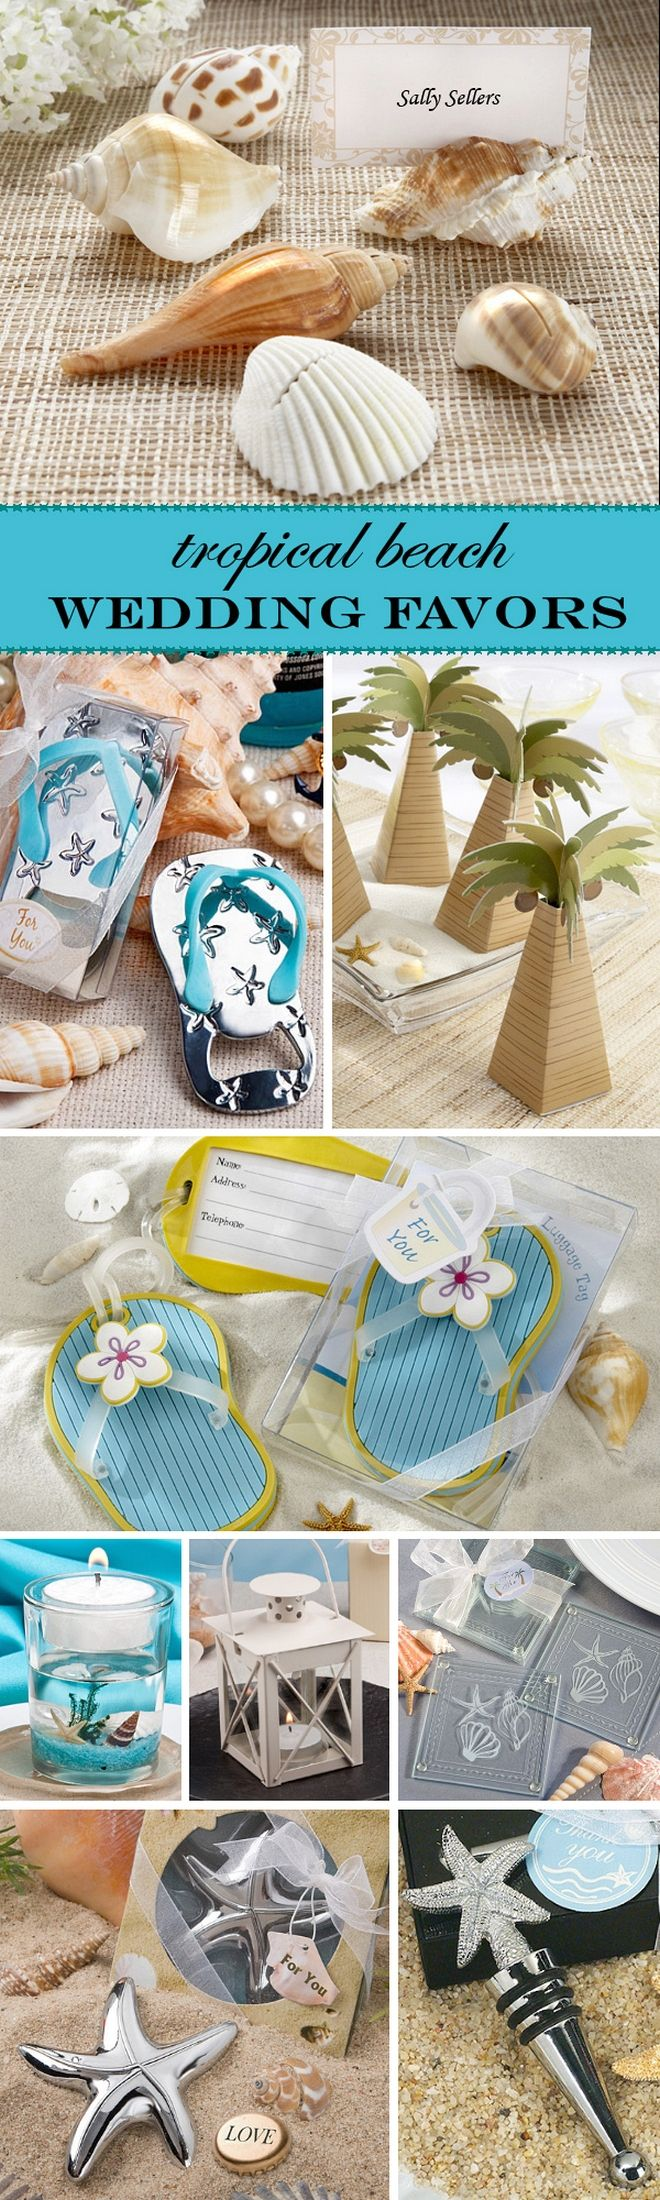 ideas for beach wedding party favors%0A     Beach Themed Wedding Favors that your guests will love    Future Wedding      Pinterest   Beach themed wedding favors  Beach themed weddings and Themed